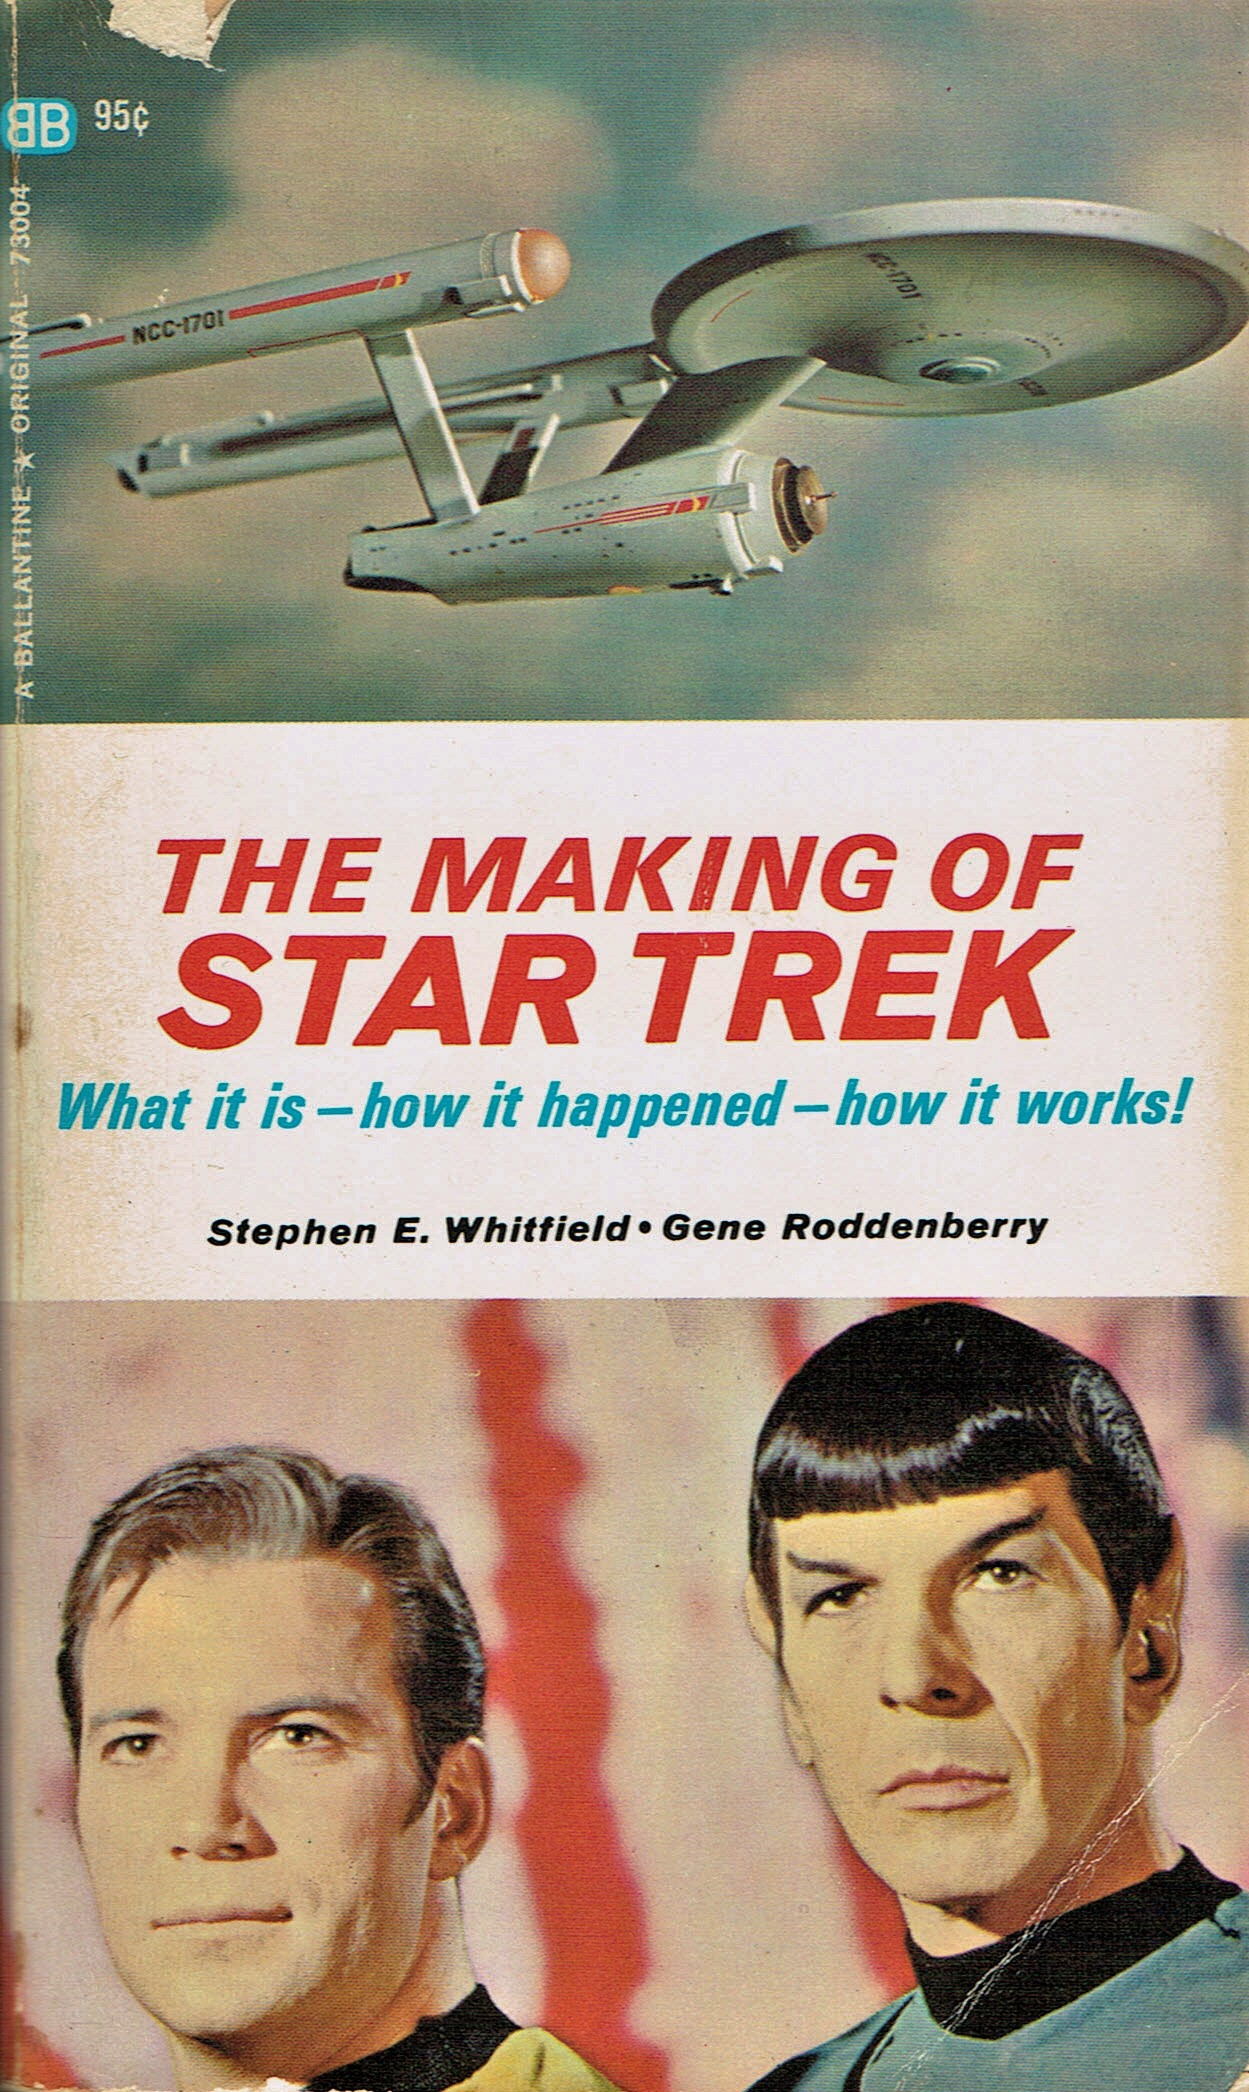 The cover of The Making of Star Trek book, by Stephen Whitfield and Gene Roddenberry, showing a picture of the Enterprise and Kirk and Spock.